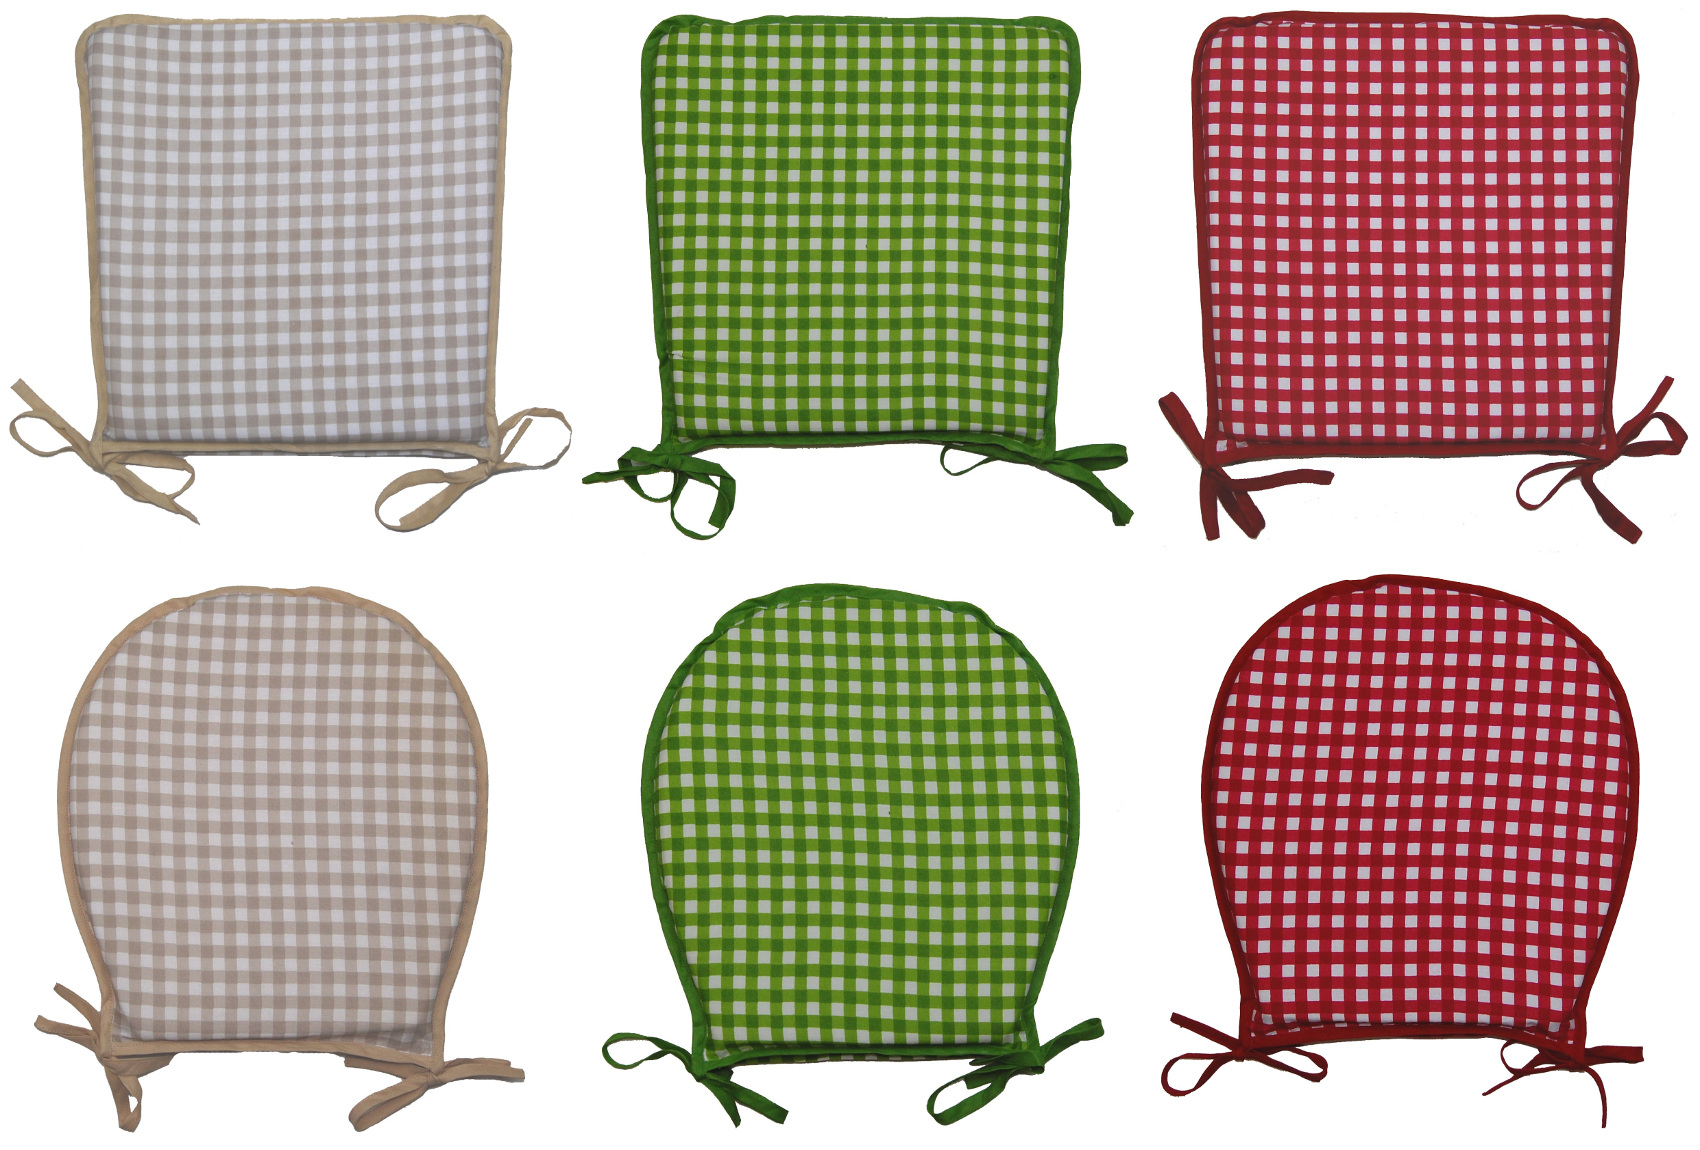 Gingham Check 100% Cotton Seat Pad Round or Square Garden Kitchen